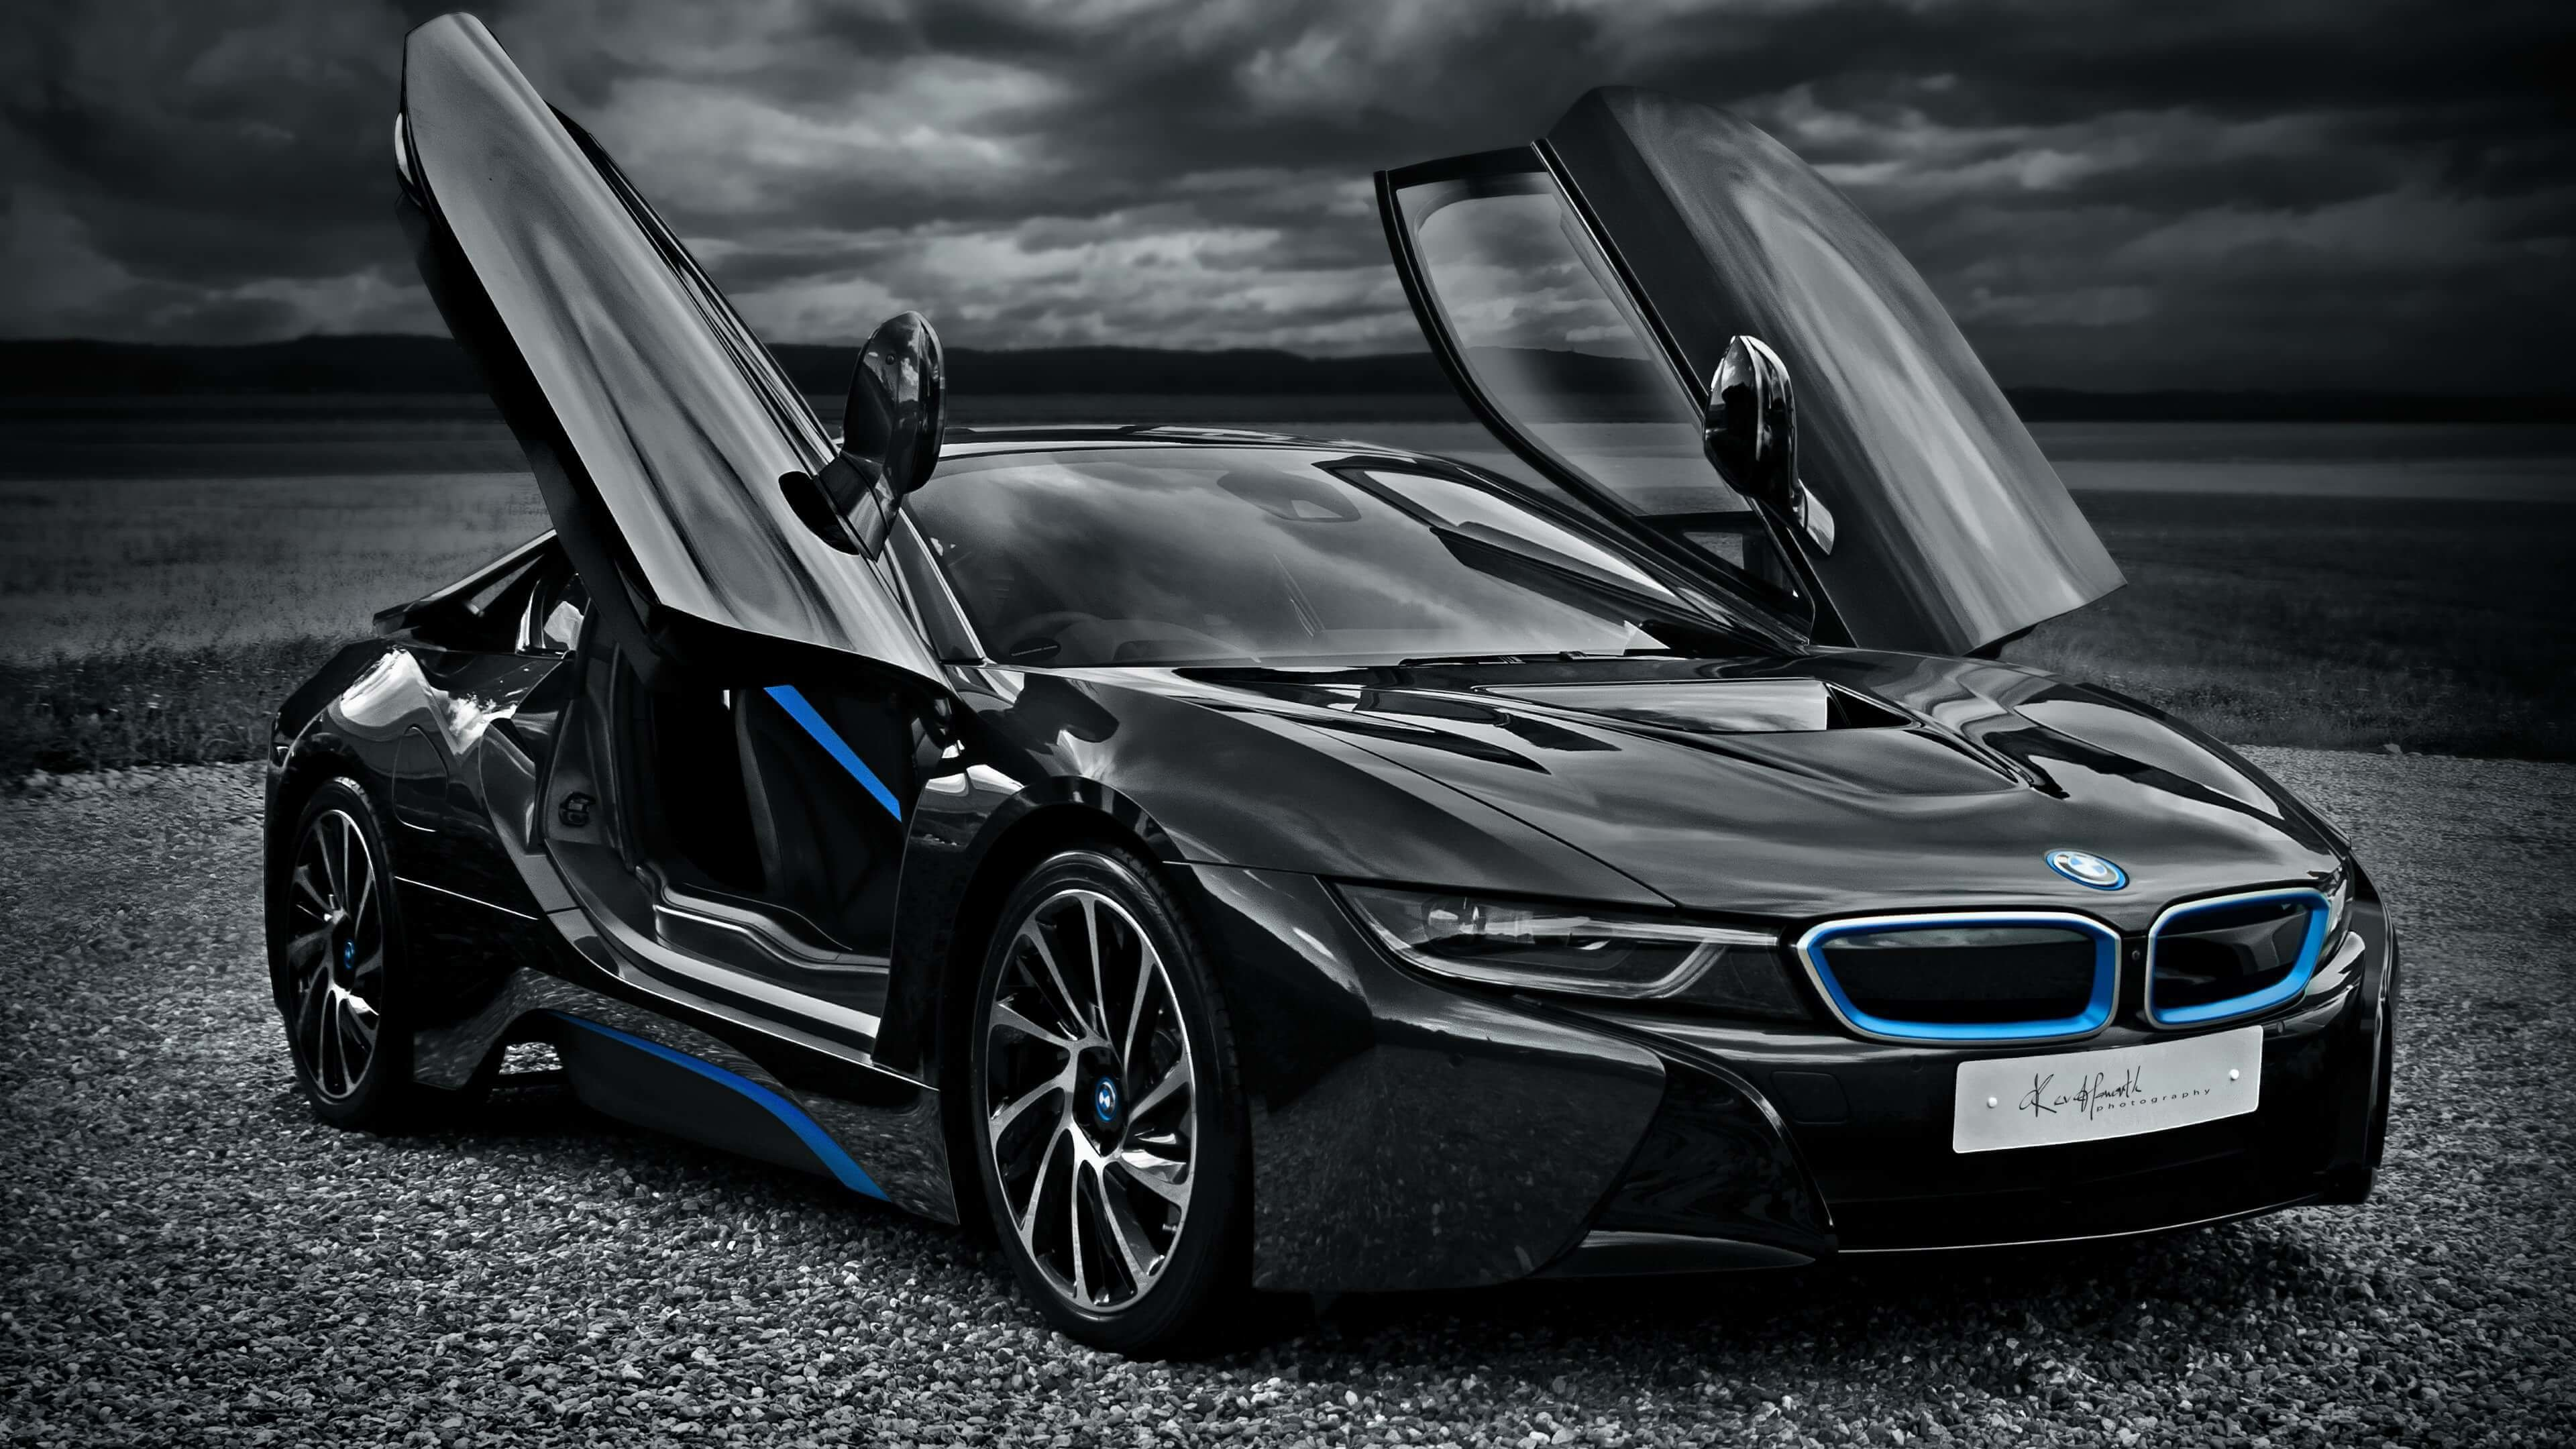 Latest Free Download Bmw I8 Backgrounds Pixelstalk Net Free Download